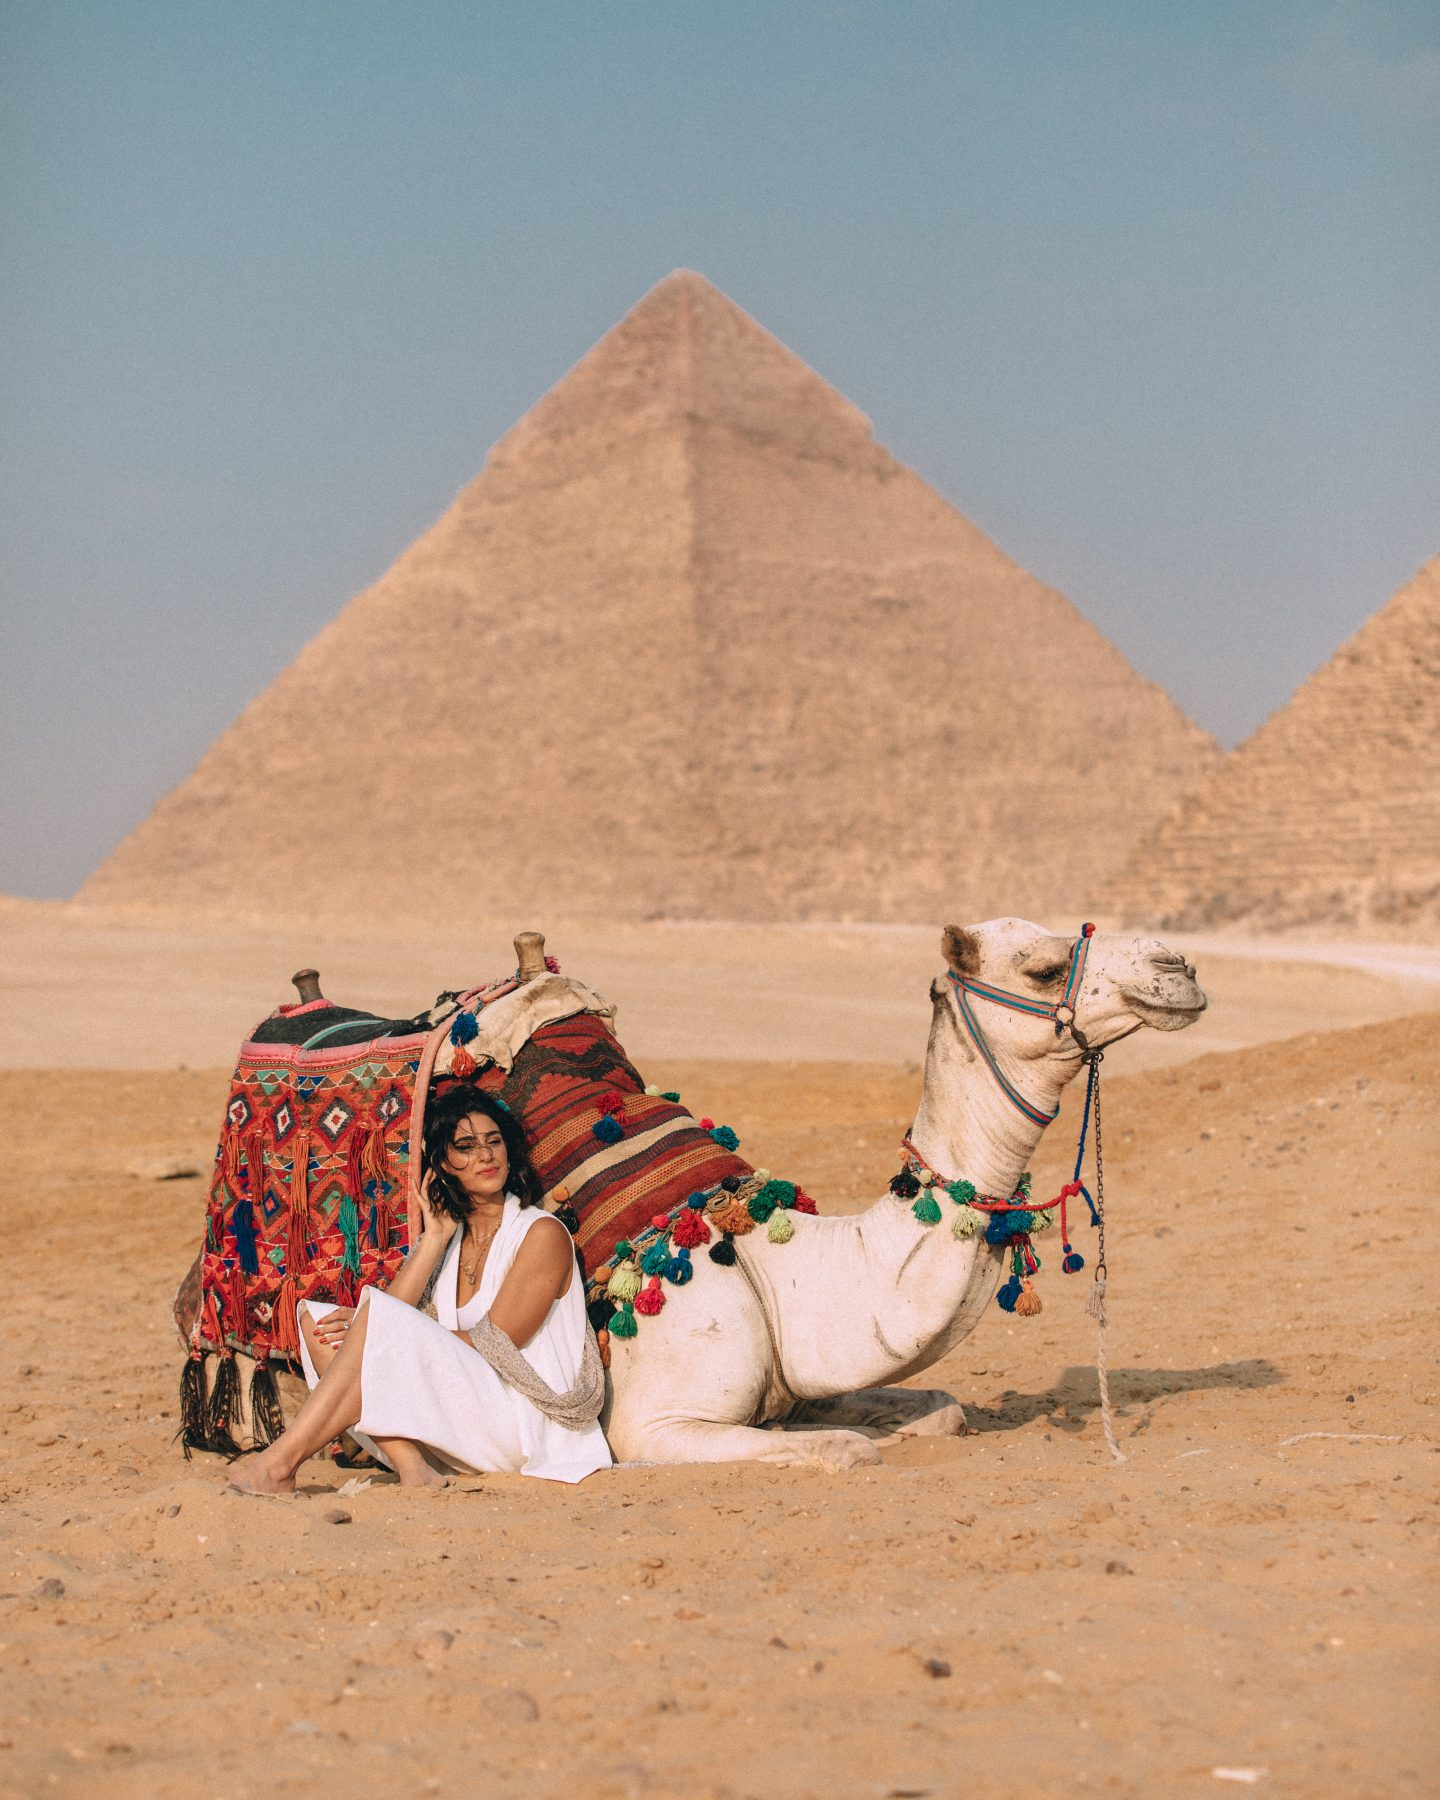 Lisa Homsy at the Great Pyramids in Egypt